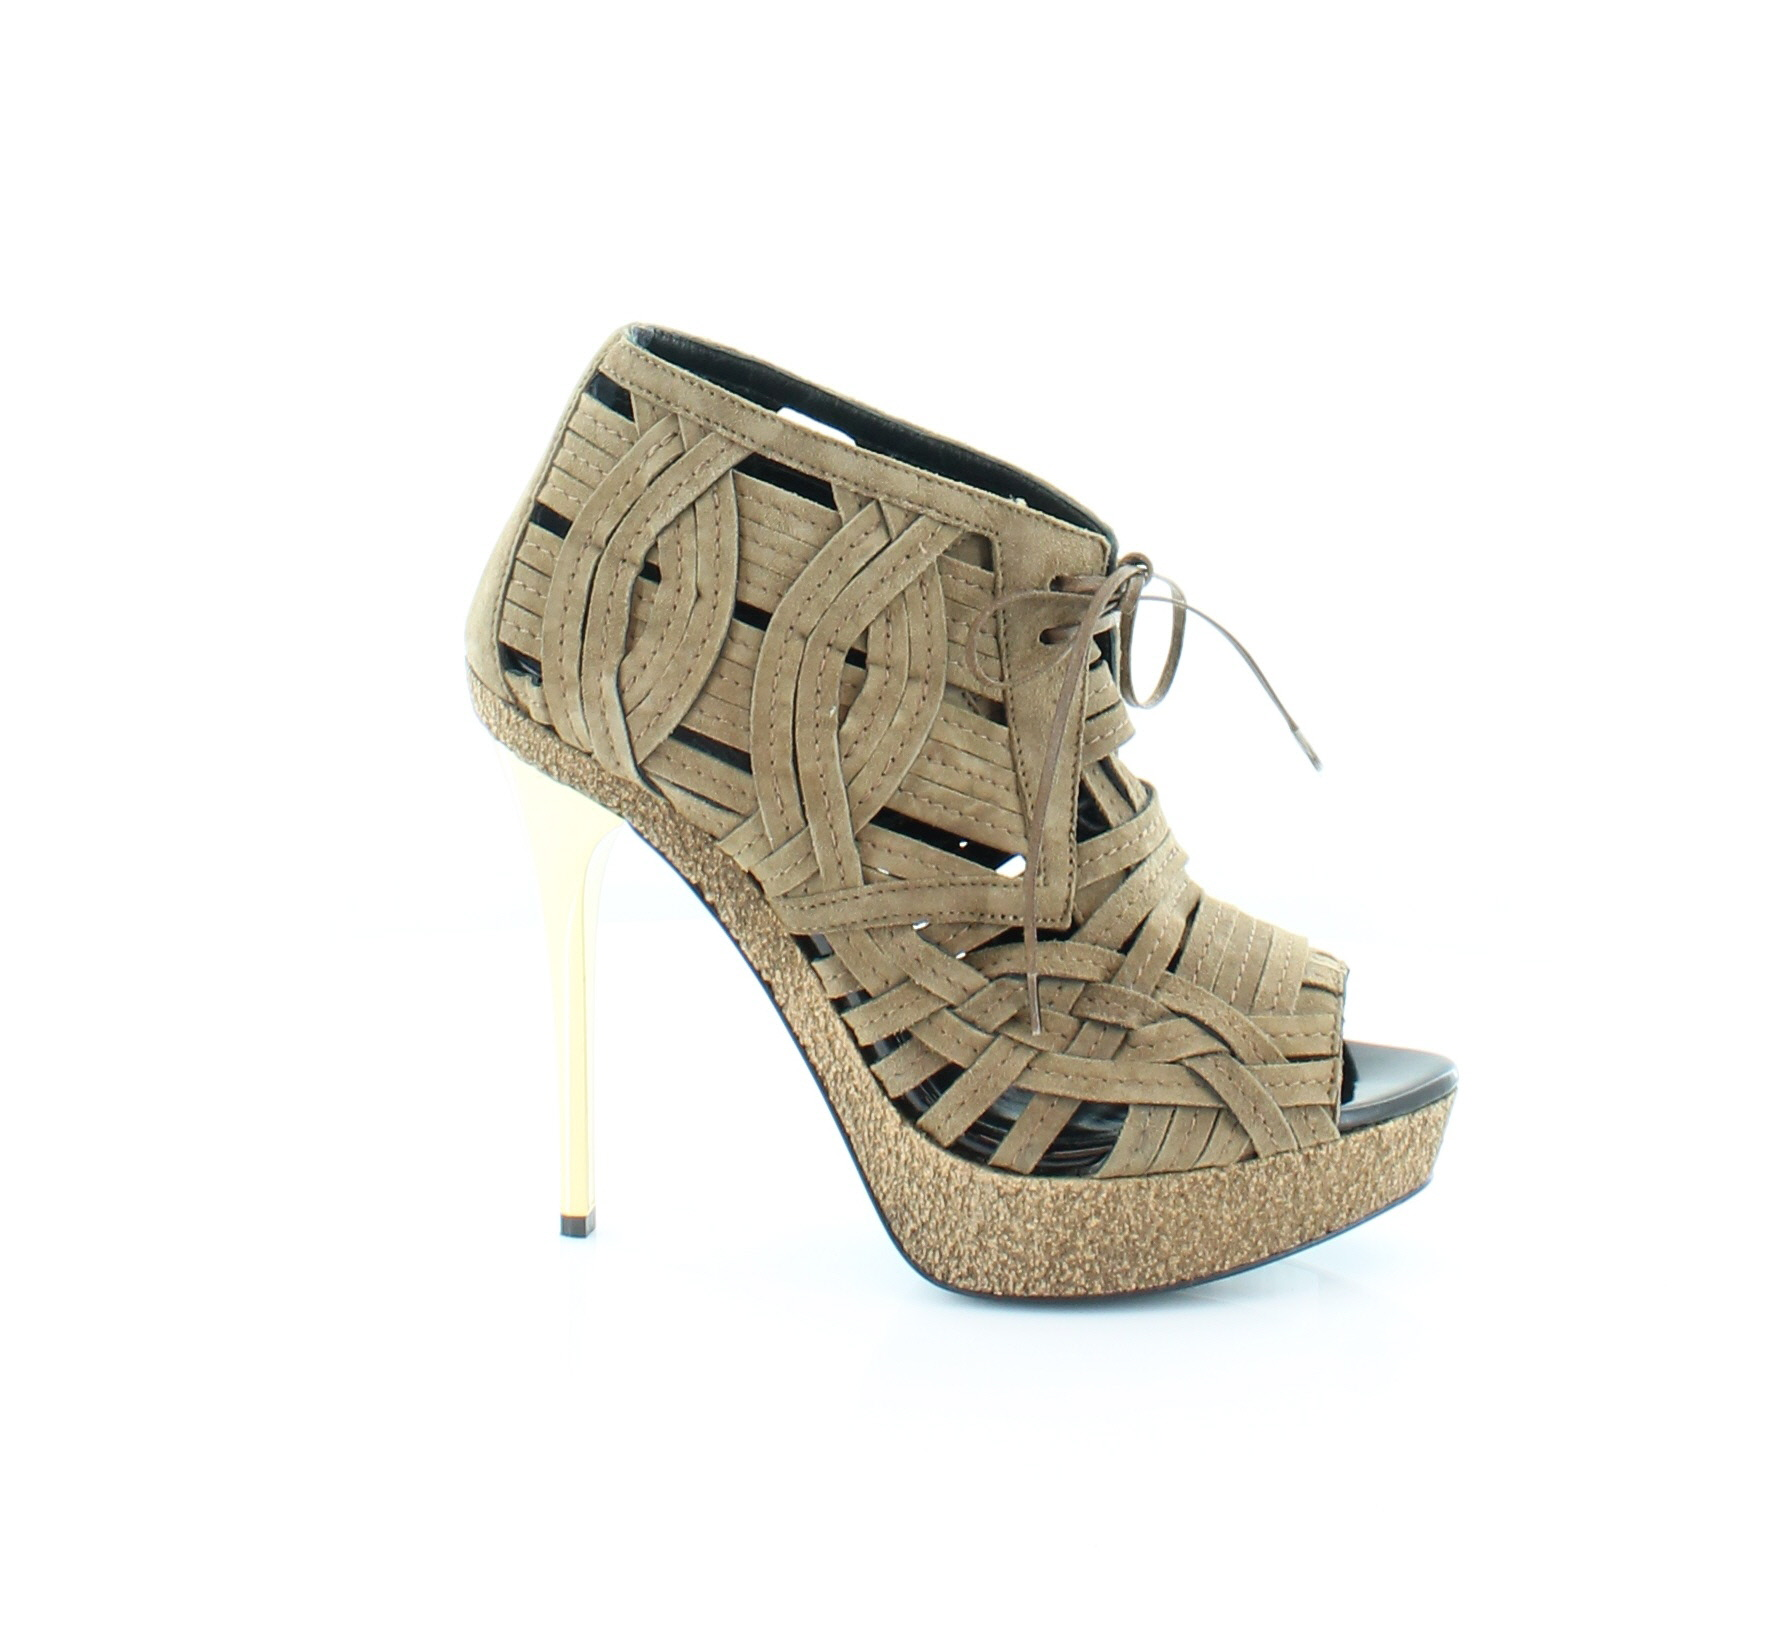 Burberry Prorsum Women's Heels Economical, stylish, and eye-catching shoes